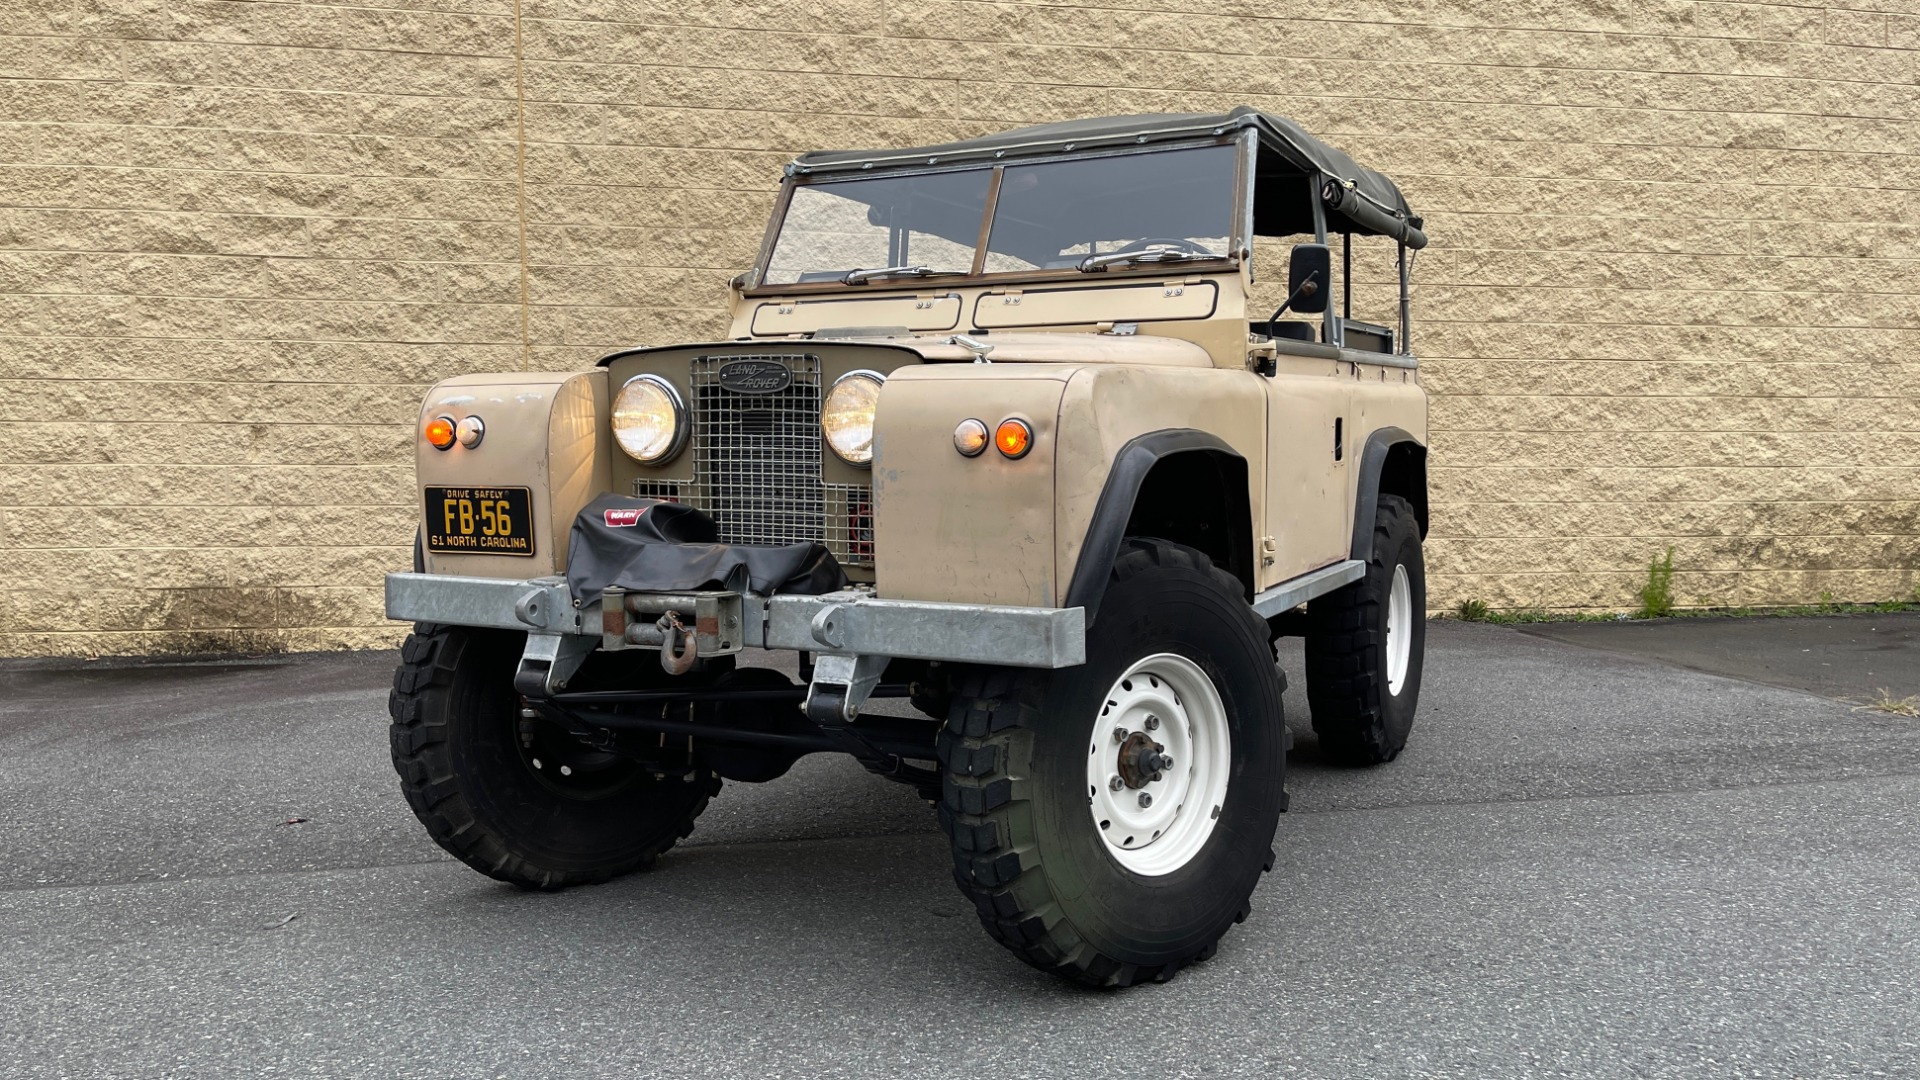 Used 1960 Land Rover 88 SERIES II VORTEC 4.8L V8 / 4X4 / 4-SPEED MANUAL / LIFTED / SOFT-TOP for sale $40,995 at Formula Imports in Charlotte NC 28227 3